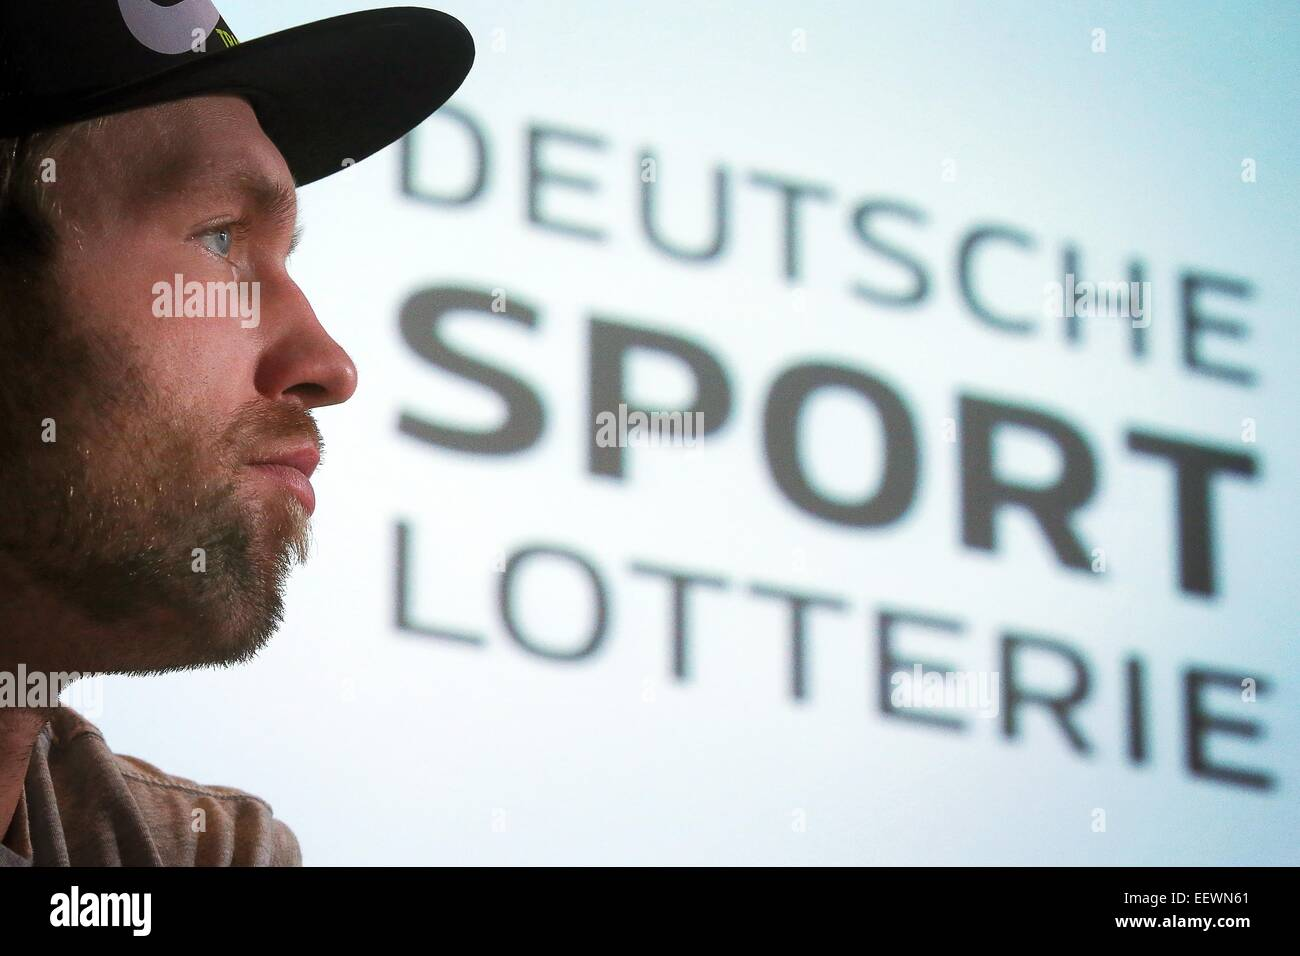 Wiesbaden, Germany. 21st Jan, 2015. Germany's Olympic winner in discus throwing, Robert Harting, attends a press - Stock Image